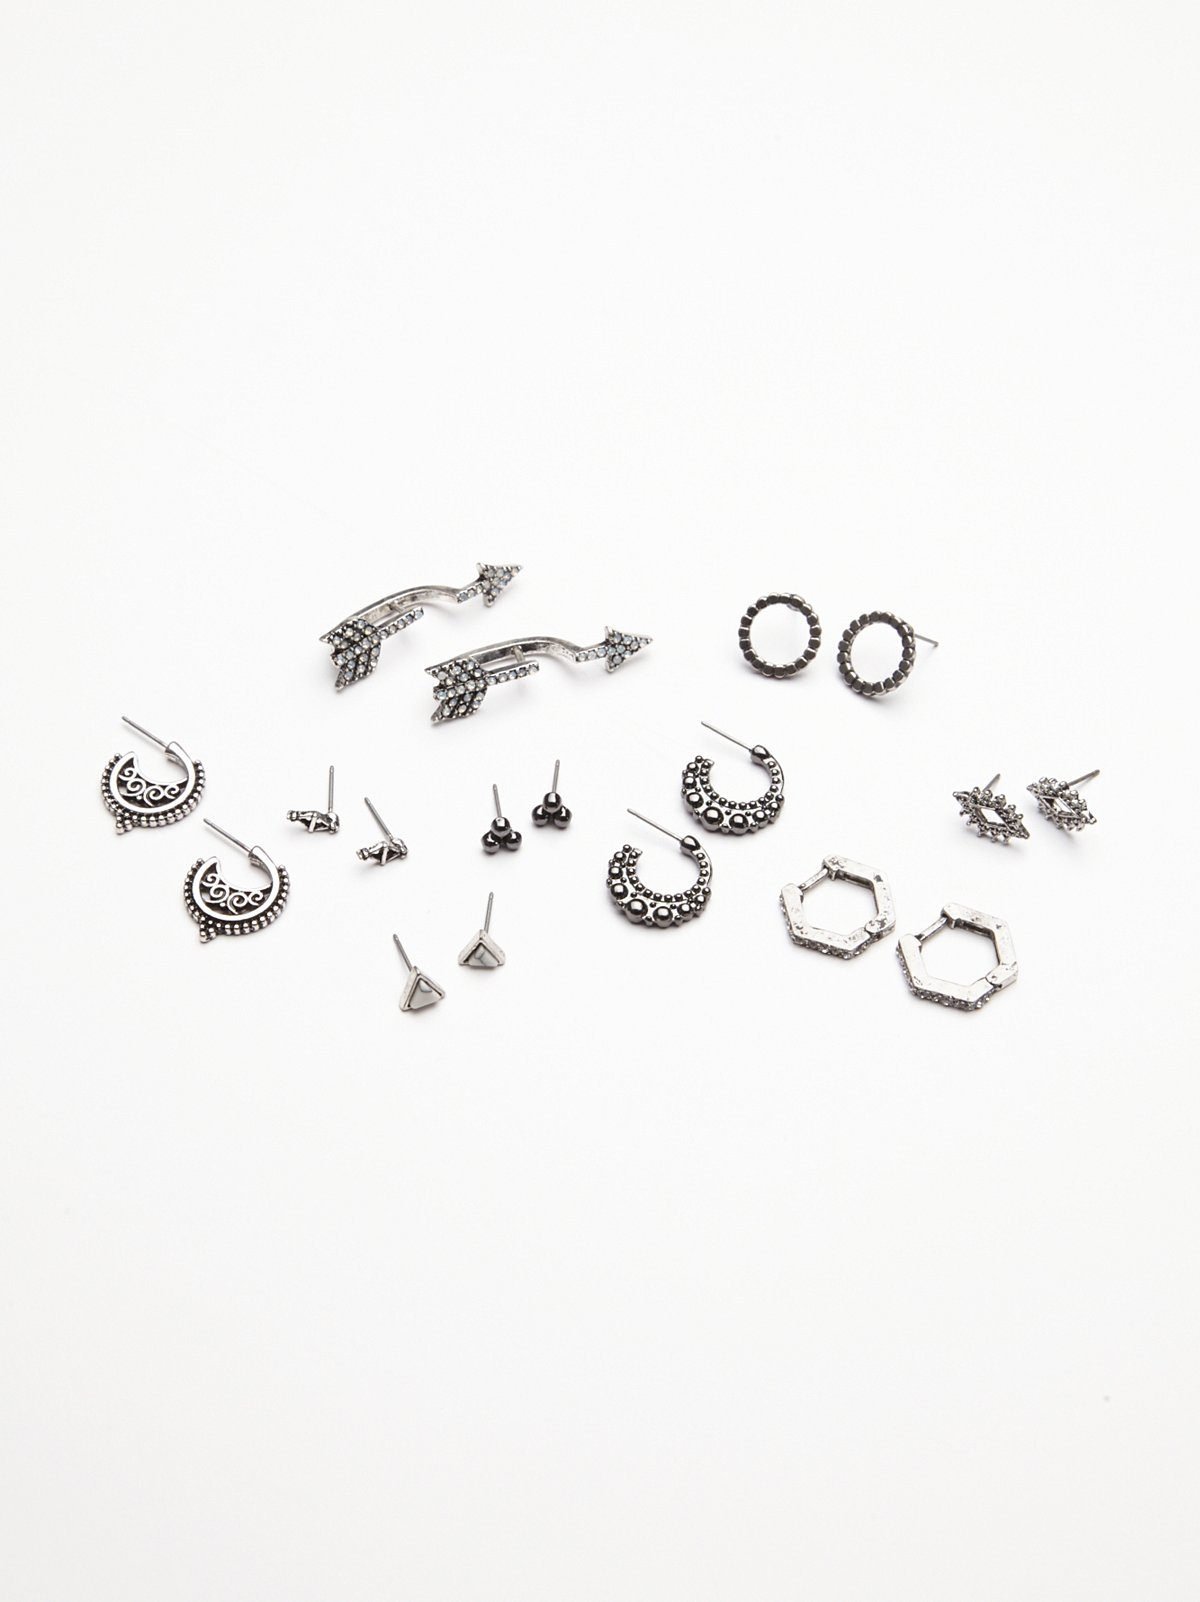 9 Pair Piercing Set